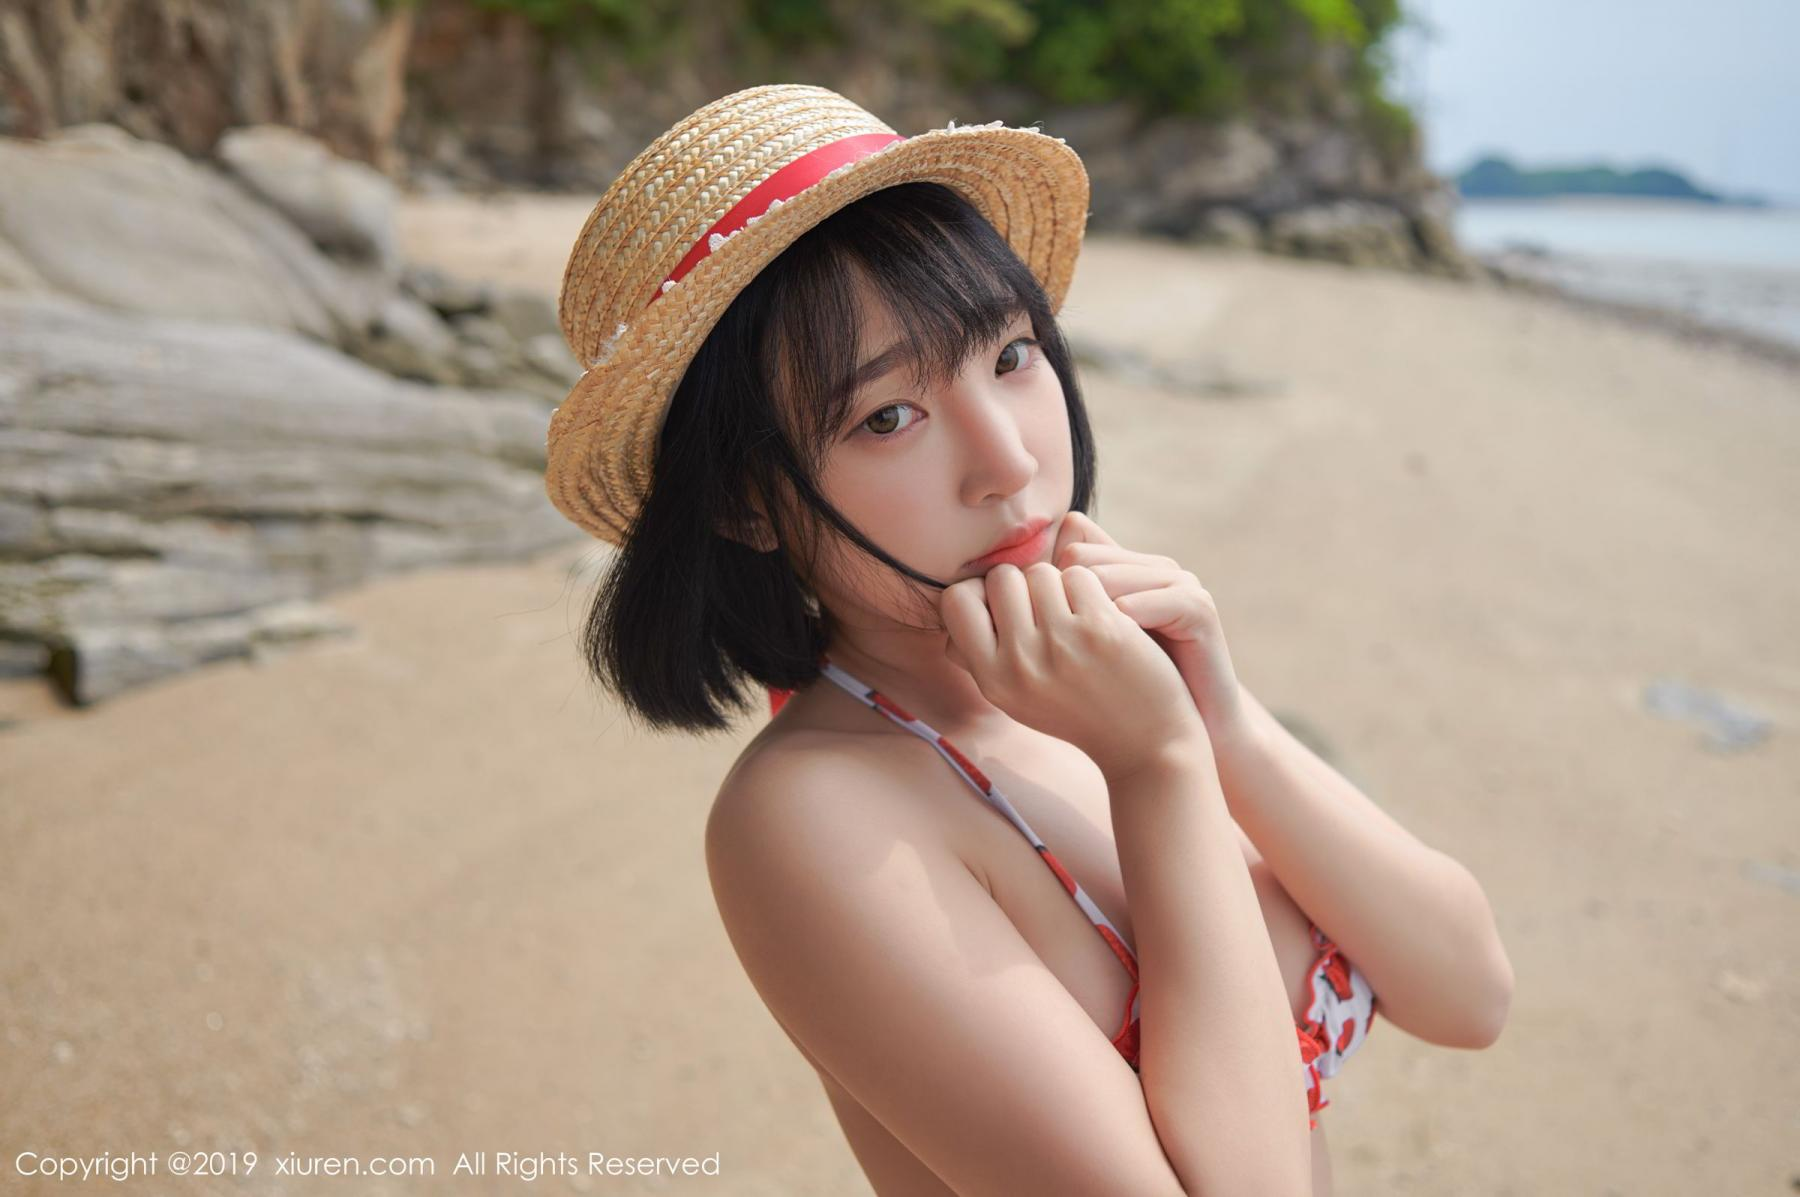 [XiuRen] Vol.1611 Model Qing Qing 5P, Beach, Bikini, Kang In Kyung, Xiuren